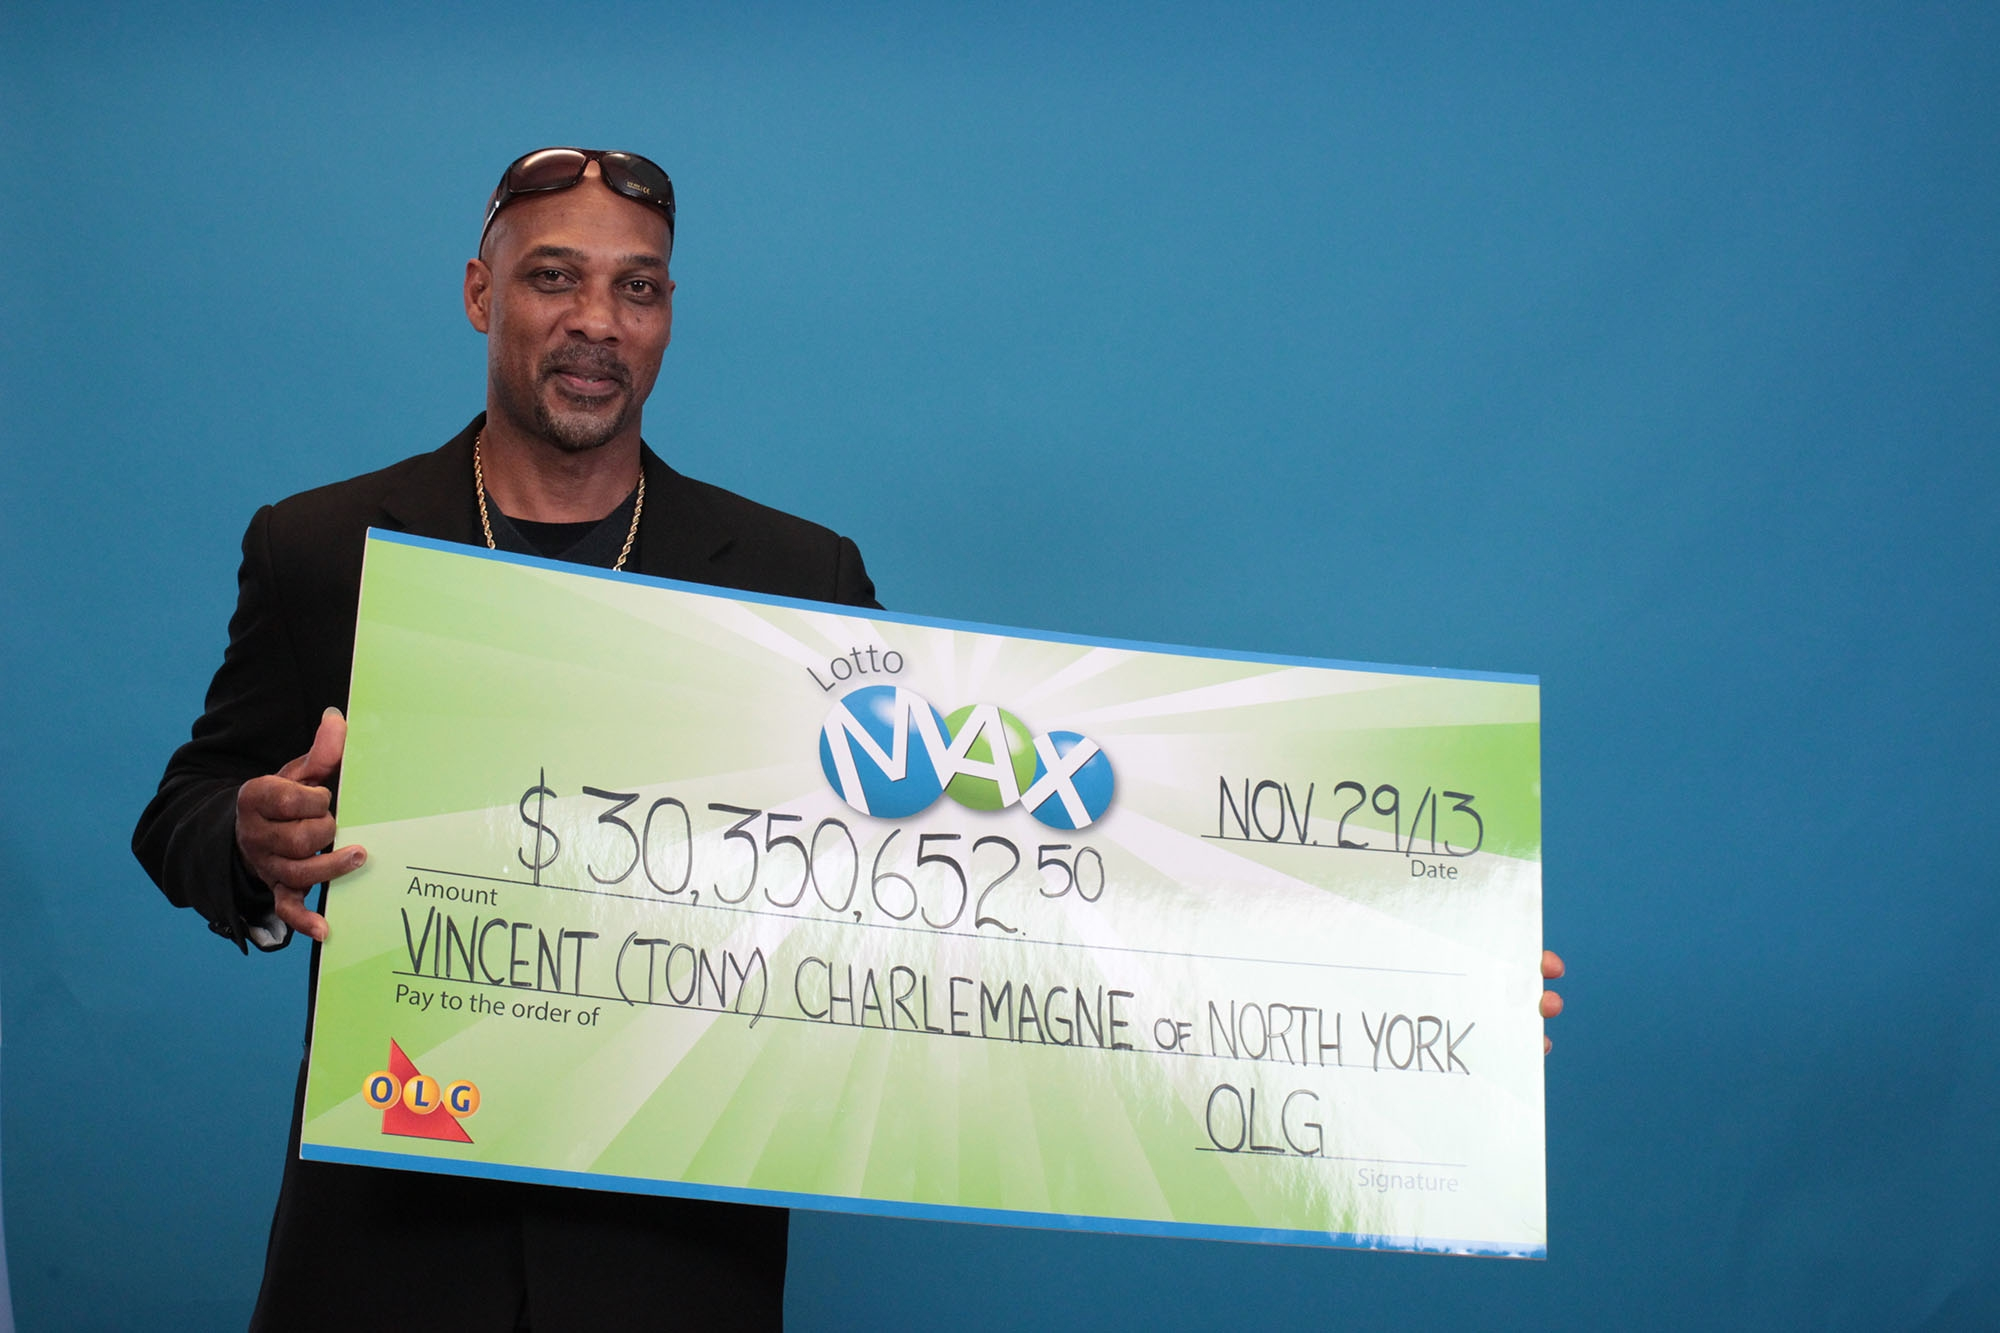 Vincent (Tony) Charlemagne of Toronto picked up his cheque for $30,350,652.50 from the August 2, 2013 LOTTO MAX draw at the OLG Prize Centre in Toronto on Friday, November 29, 2013